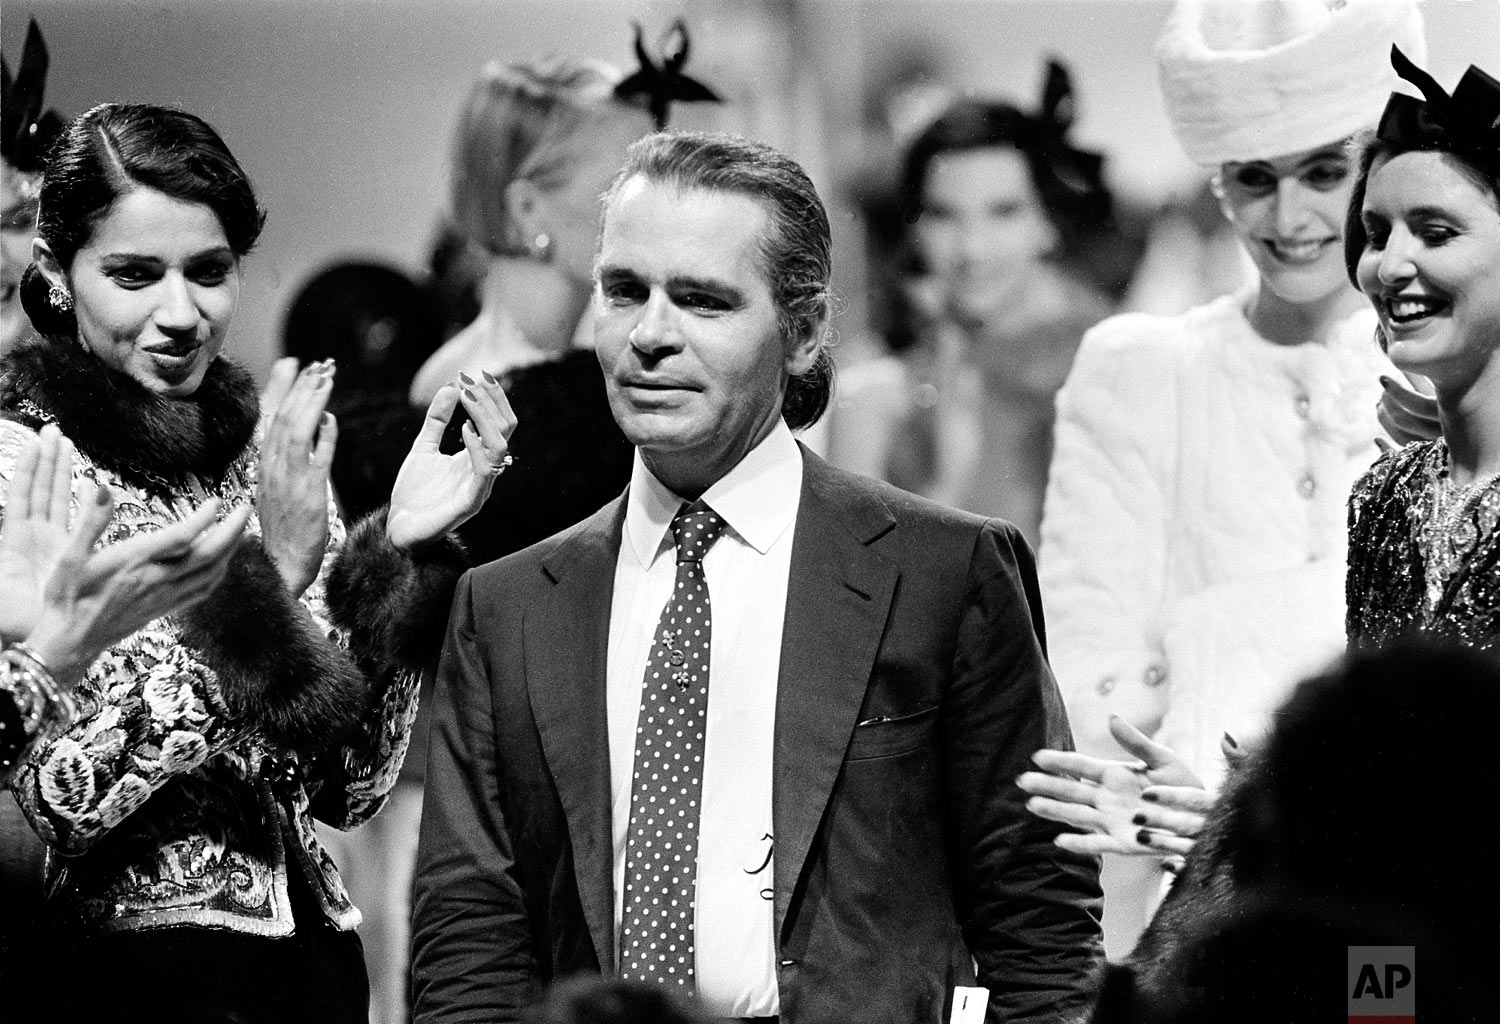 German fashion designer Karl Lagerfeld is applauded by his models at the end of the presentation of Chanel's fall and winter haute couture collection in Paris, France, July 26, 1983. (AP Photo/Jacques Langevin)